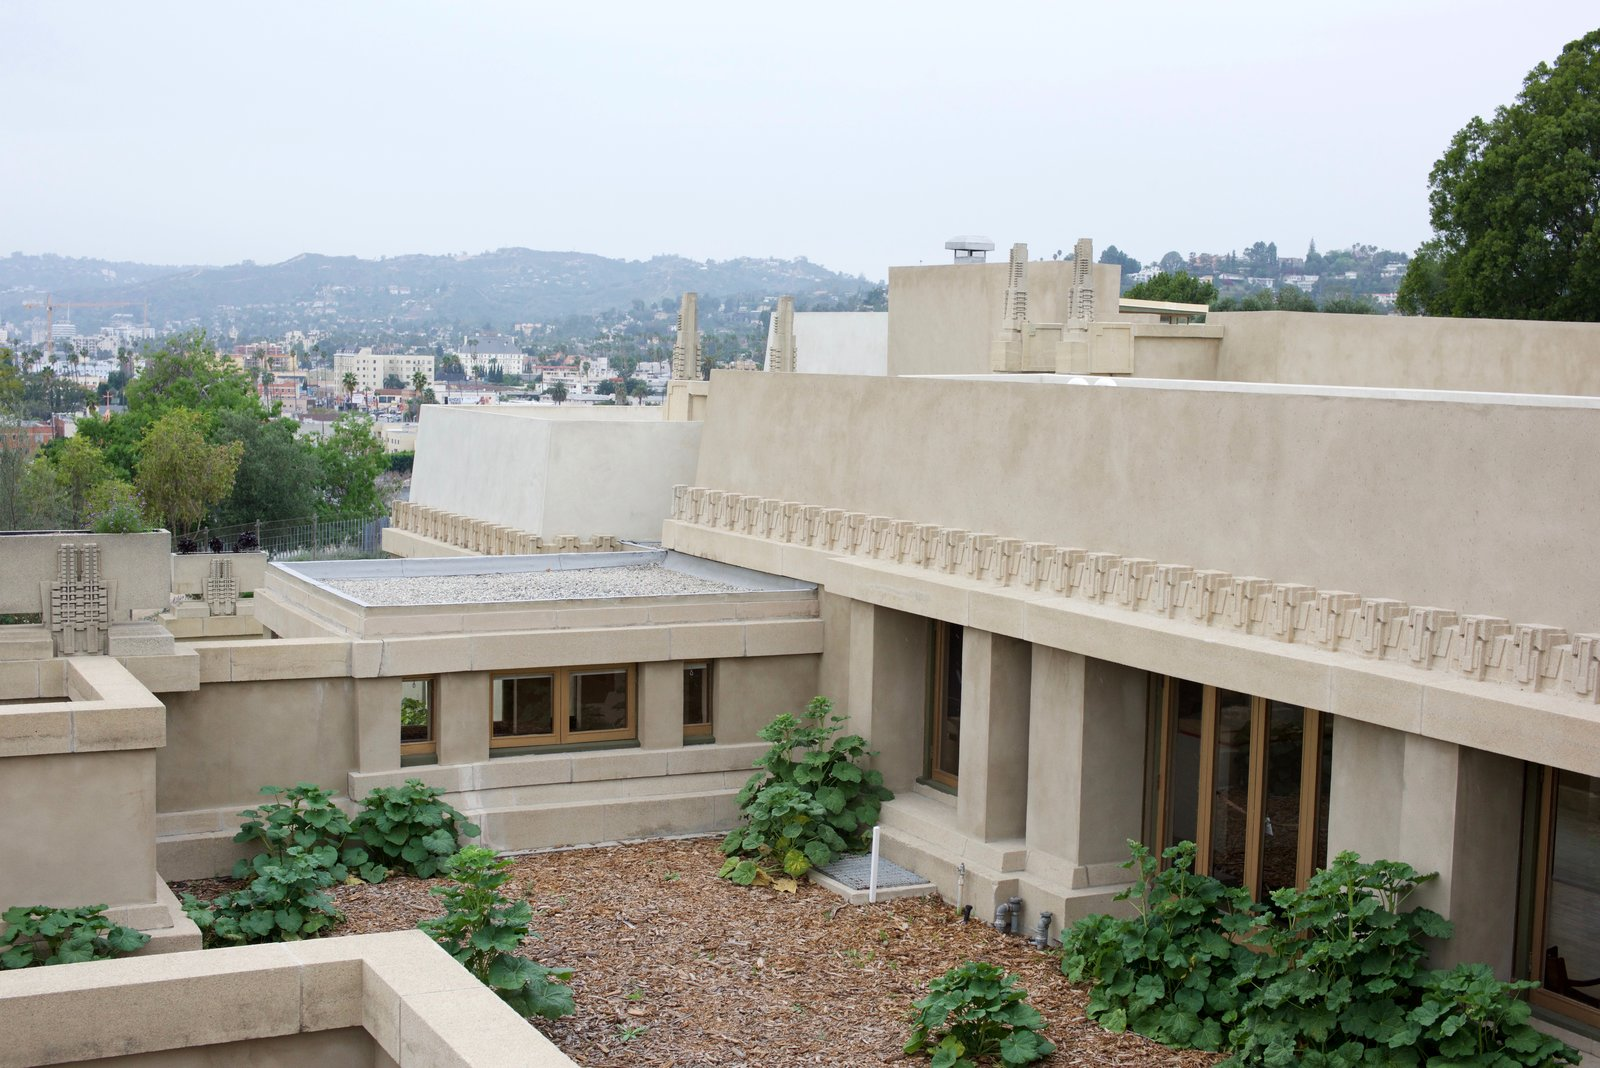 Iconic perspectives frank lloyd wright 39 s hollyhock house for Hollyhock house